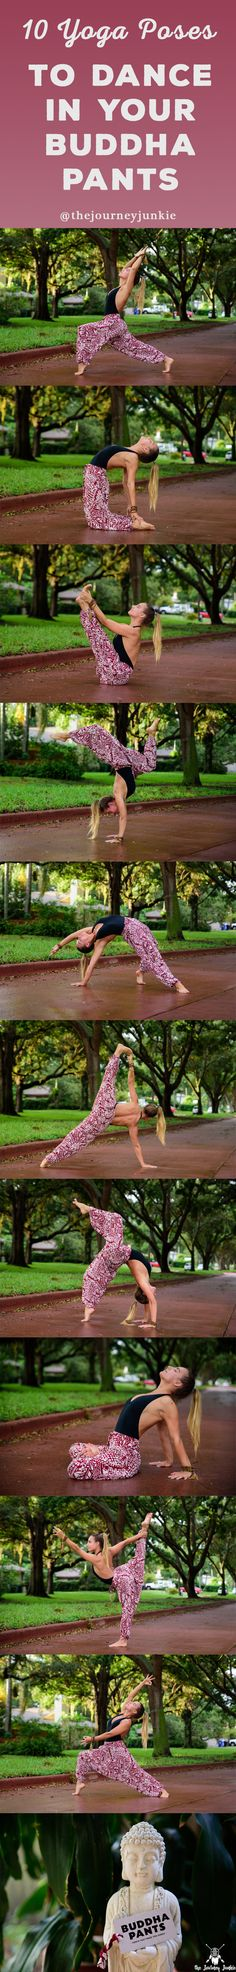 Get inspired to move your body with these 10 shapes + these badass, beautiful pants from Buddha Pants! Plus, there's a coupon waiting for you on the other side yogis!